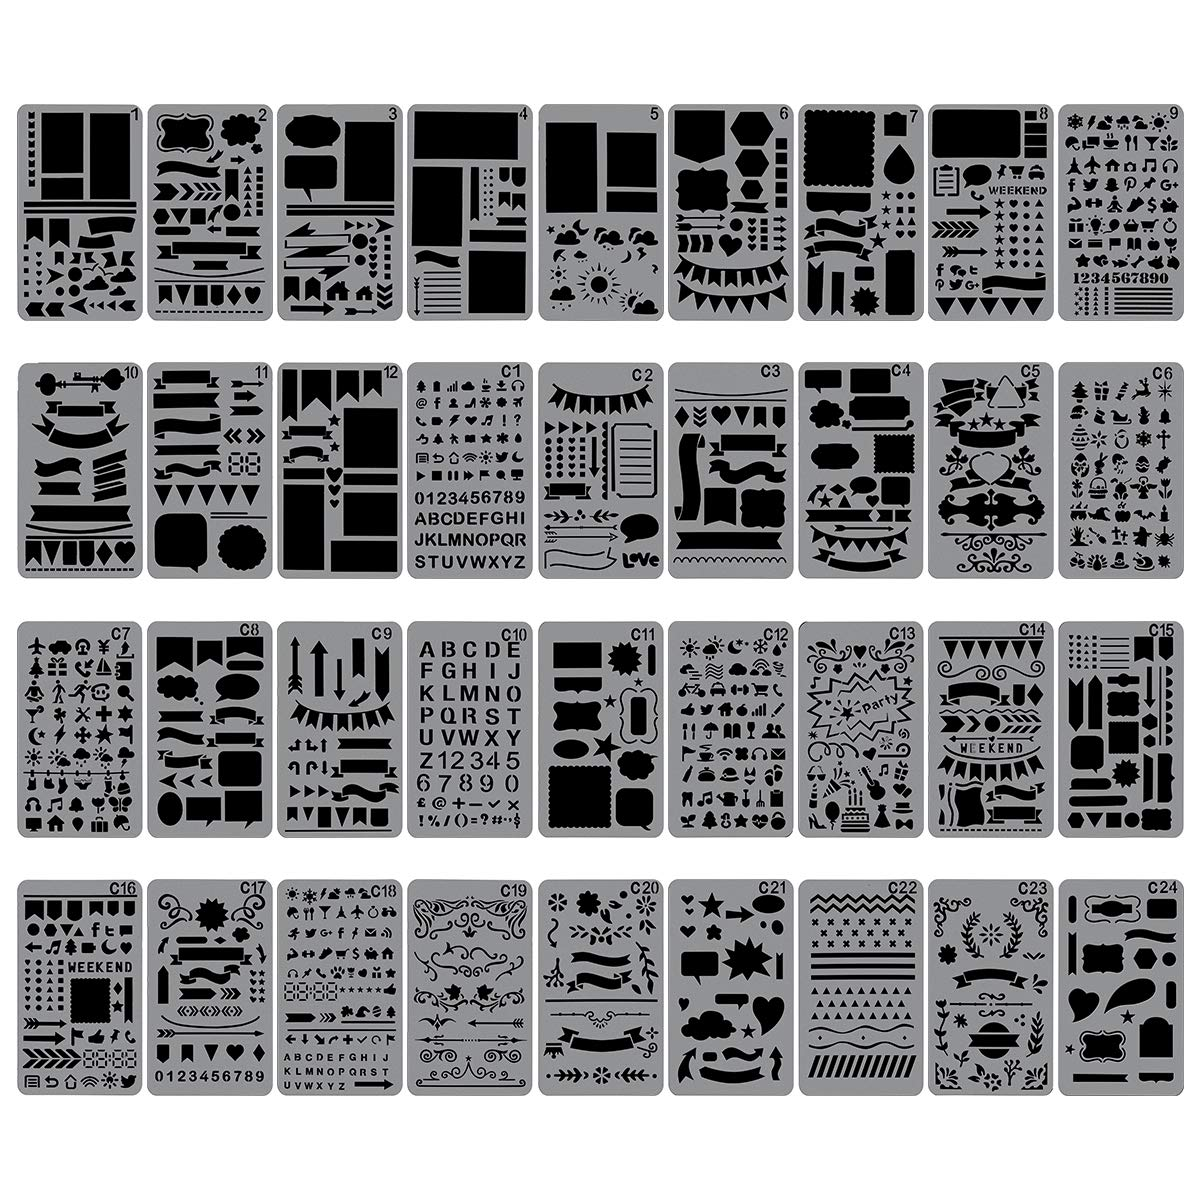 Diary 4 x 7 Plastic Planner Stencils Drawing Templates Set for Notebook Biubee 36 Pcs Plastic Stencils Over 1500 Different Patterns DIY Scrapbook